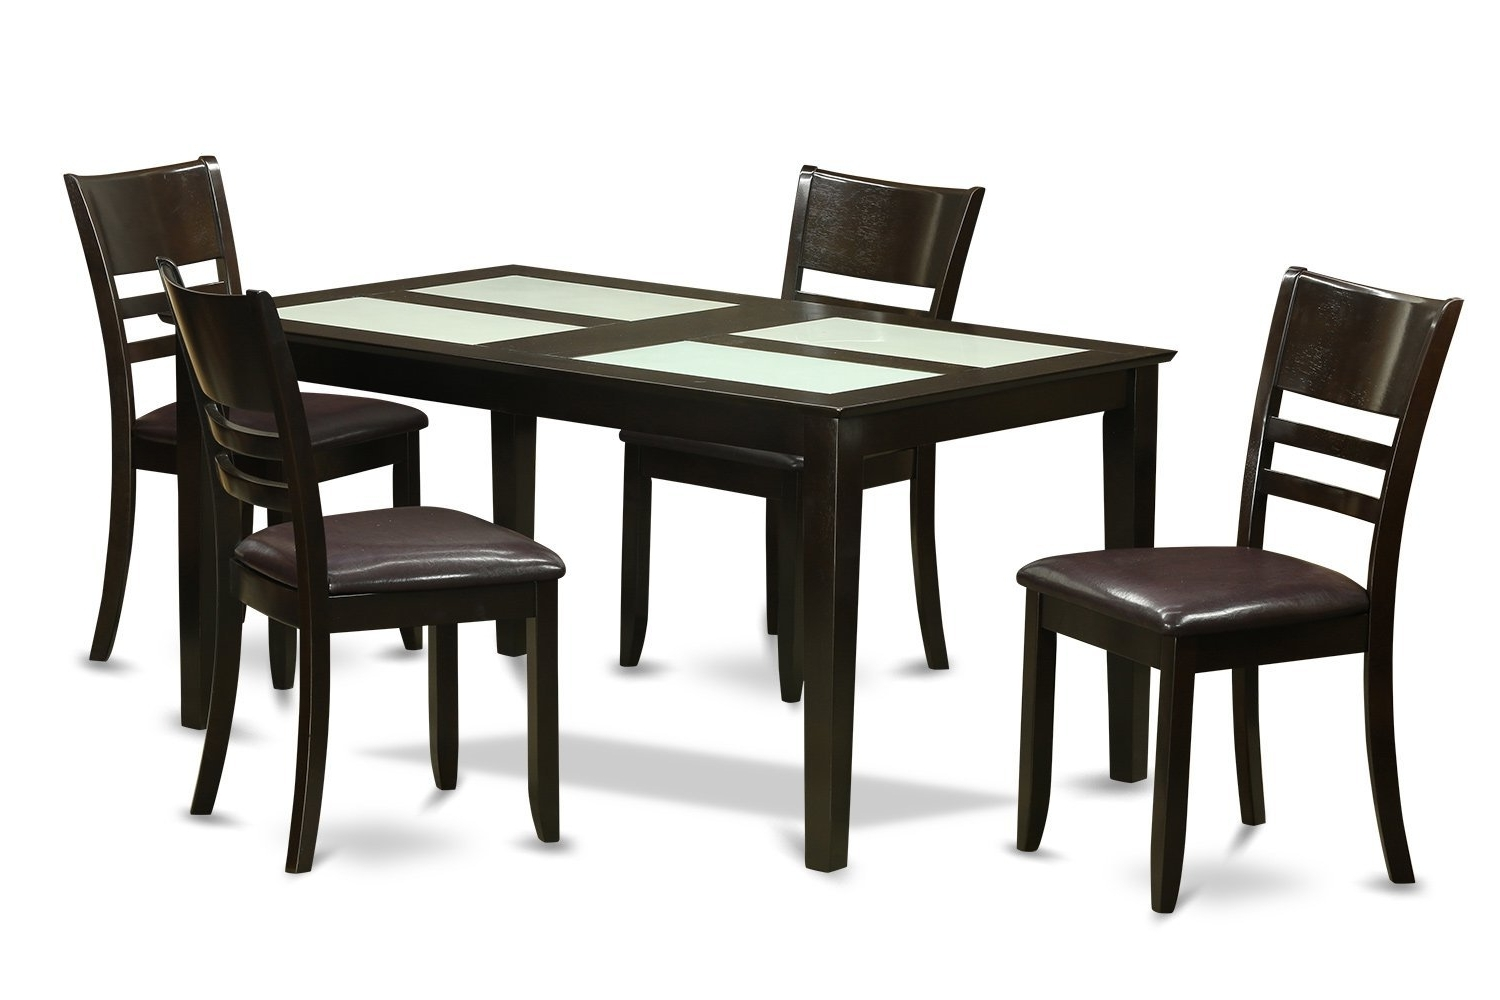 Cheap Dining Table, Find Dining Table Deals On Line At Alibaba Within Most Current Cheap Dining Tables (View 7 of 25)